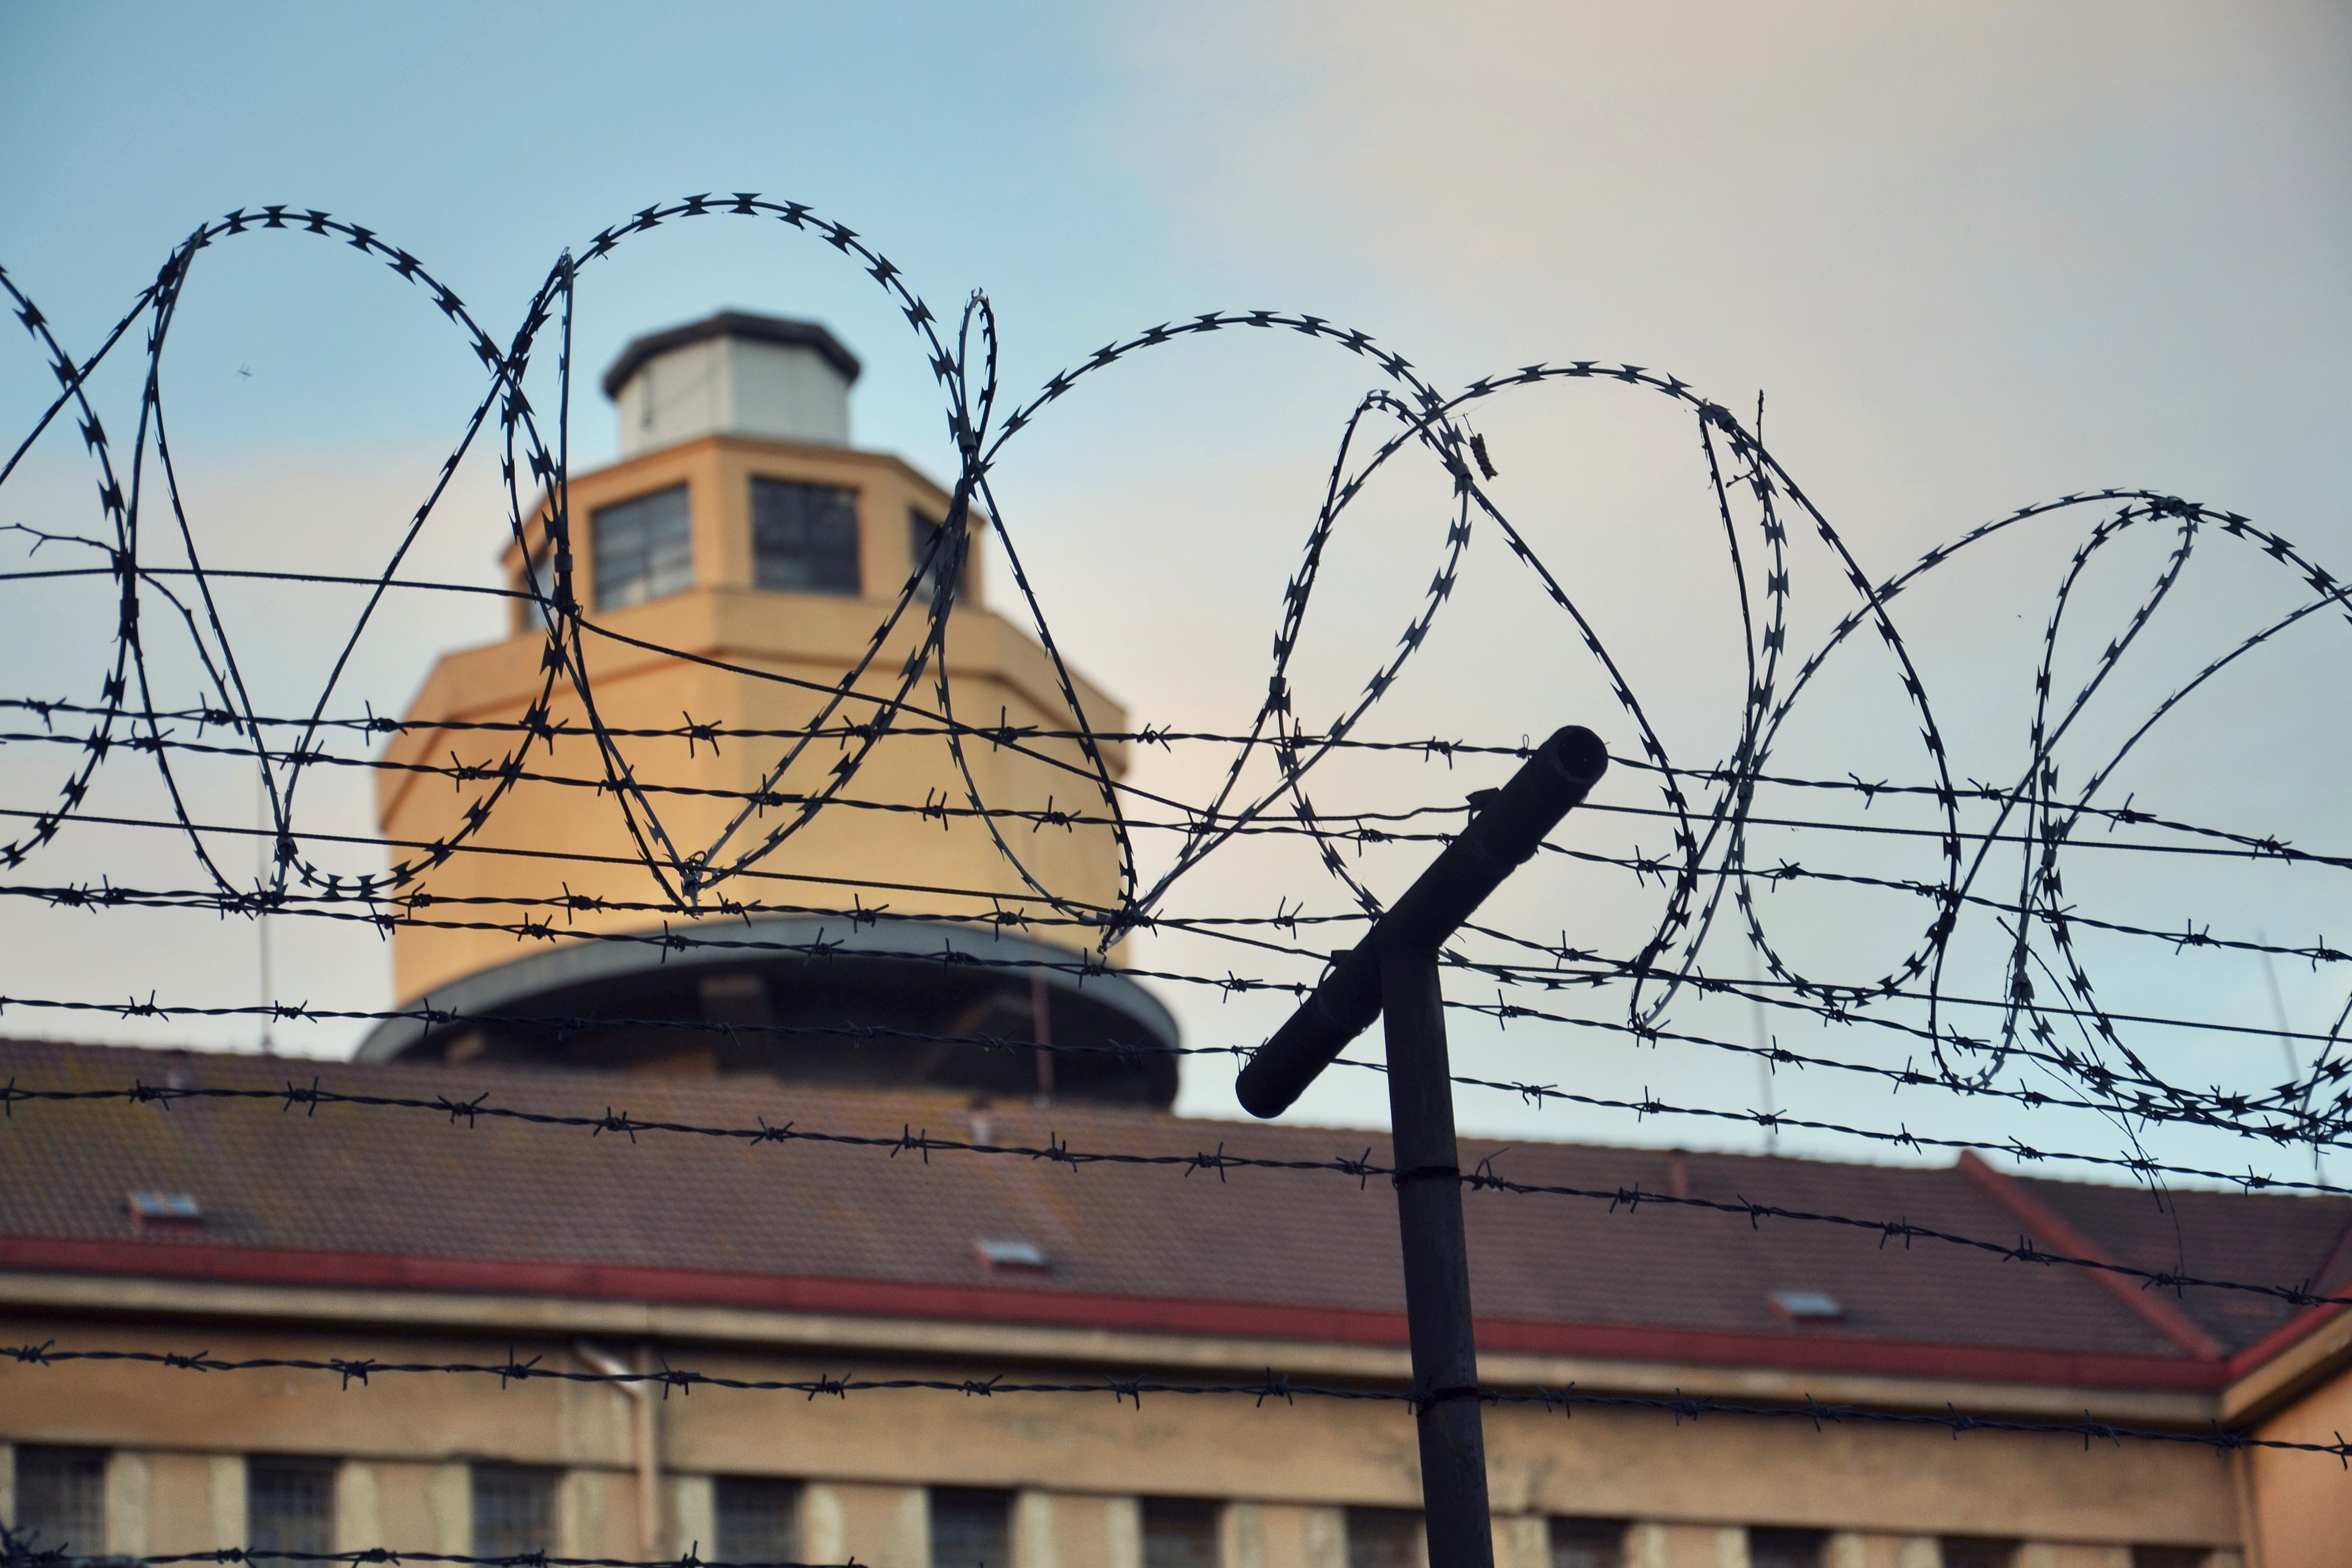 Gov Whitmer Moves To Protect Michigan Prisons As Coronavirus Spreads News Hits